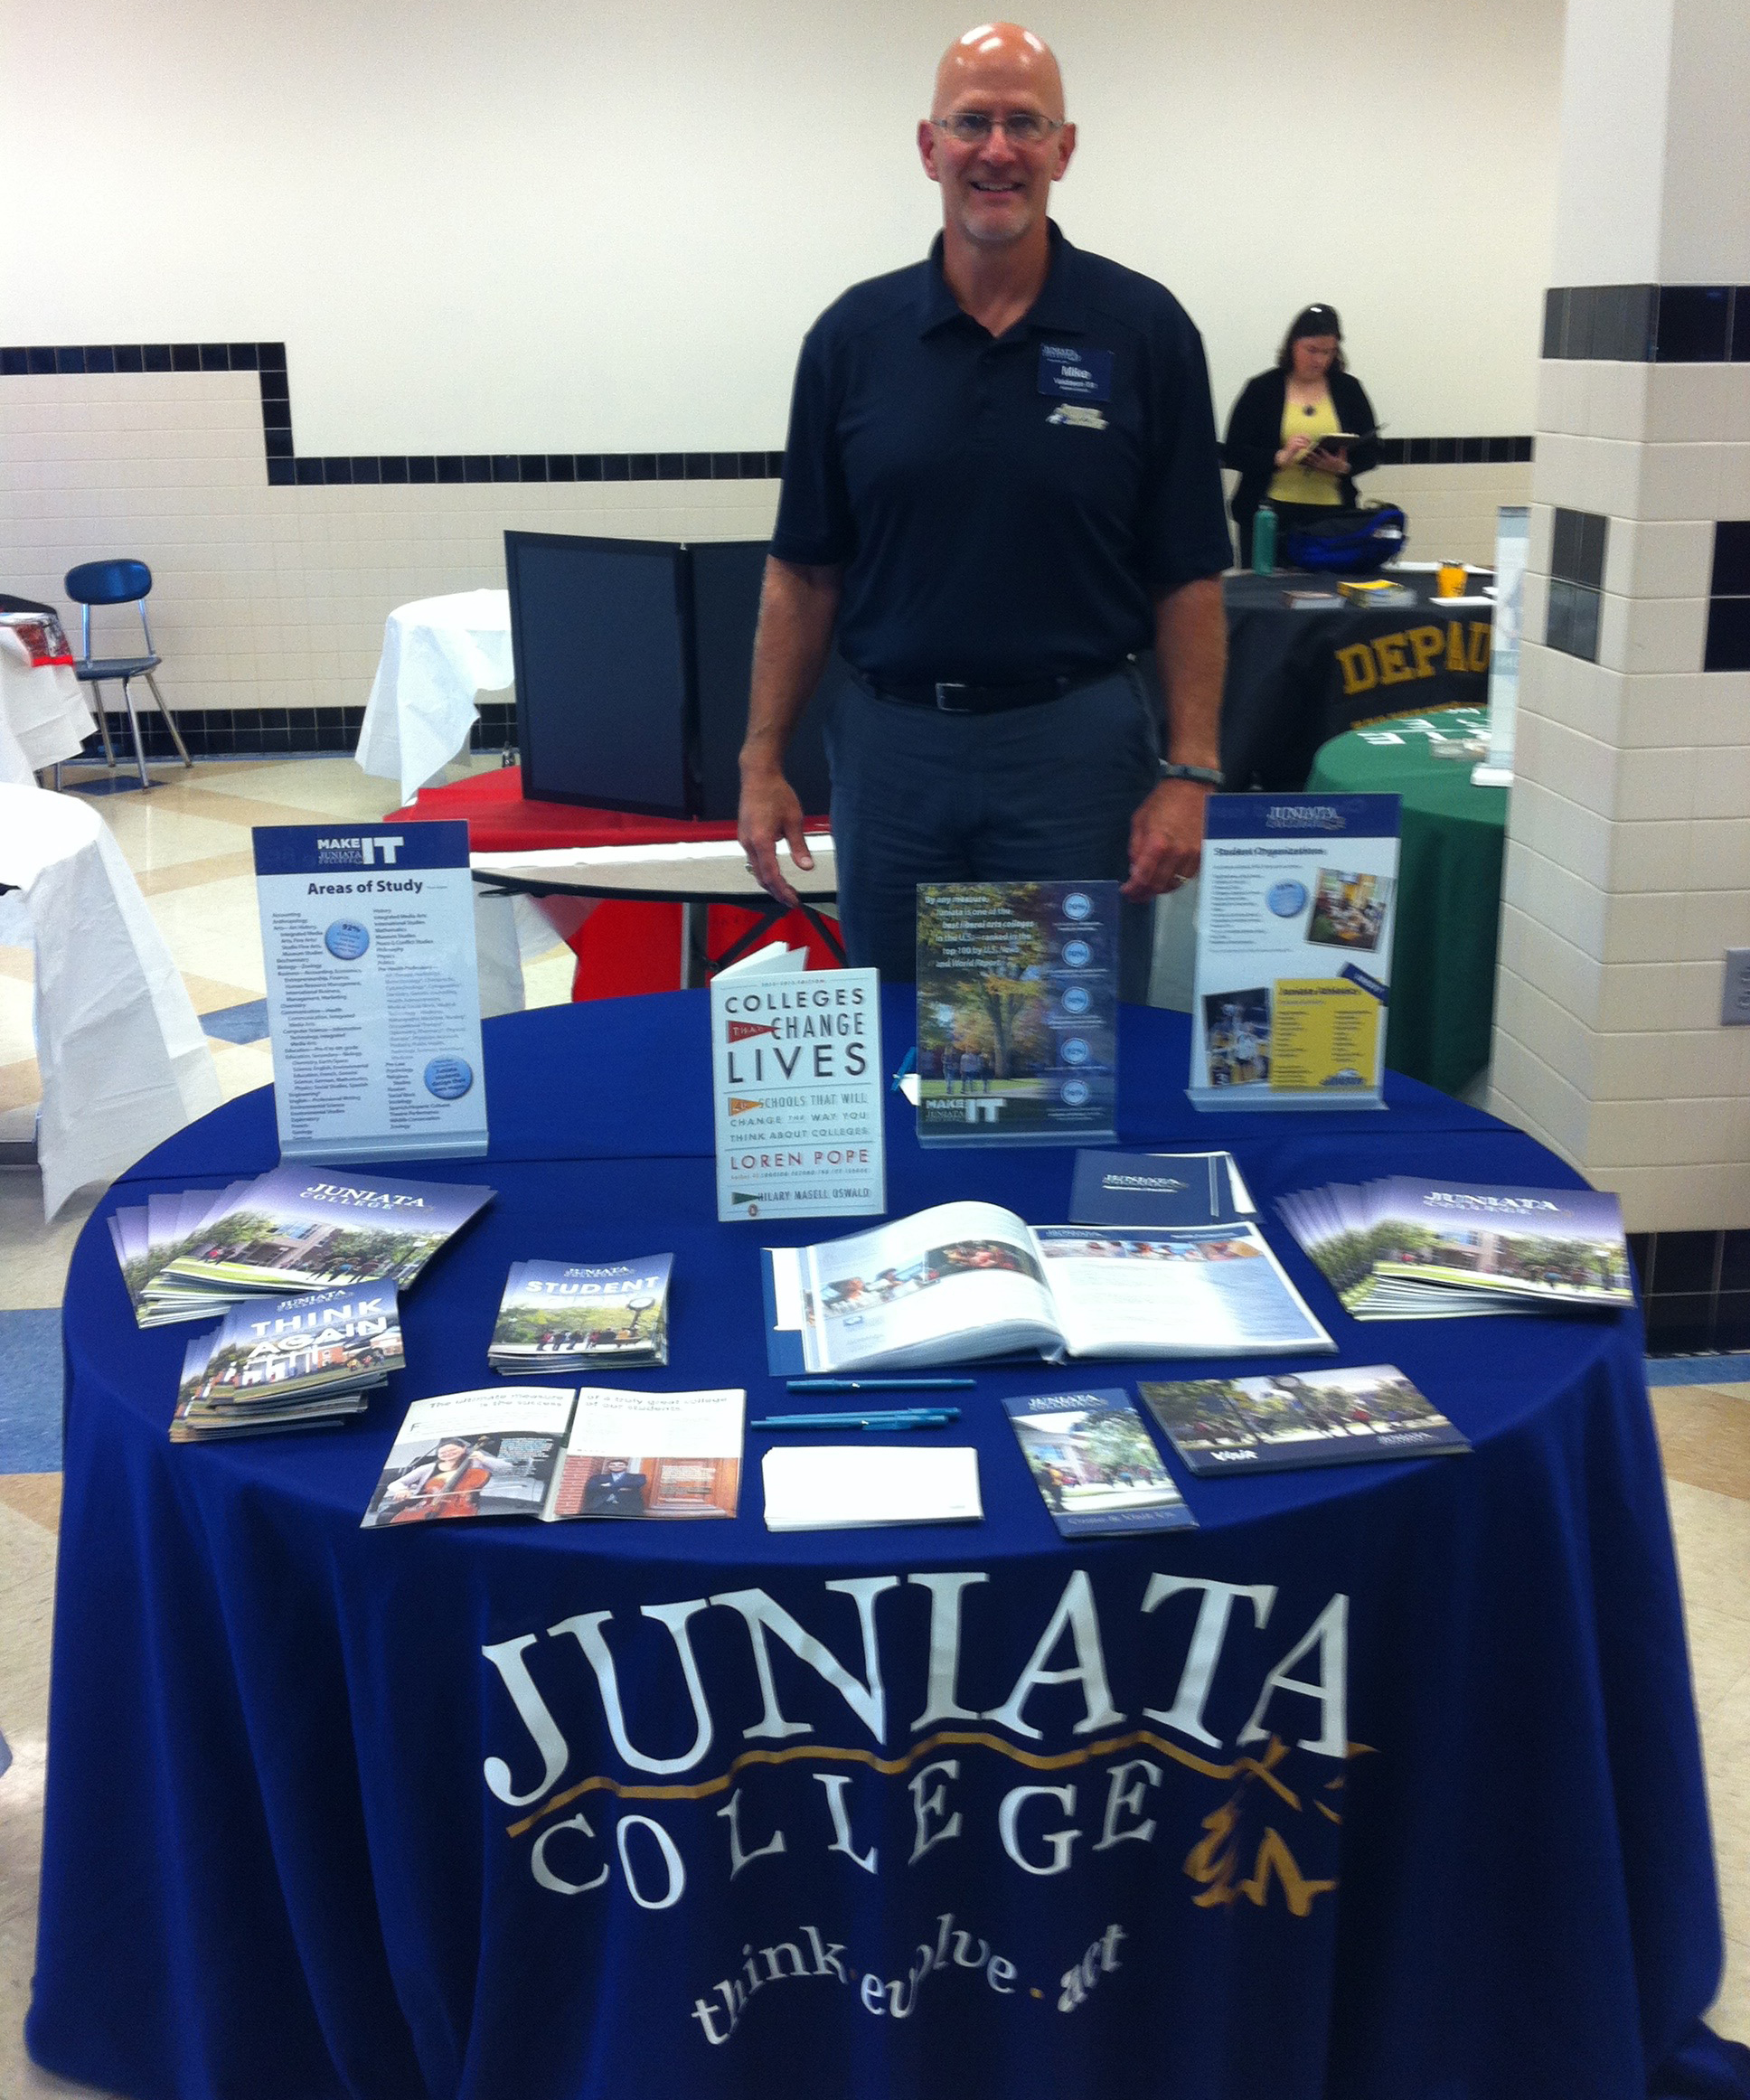 Mike Valdiserri representing Juniata College at a College Fair